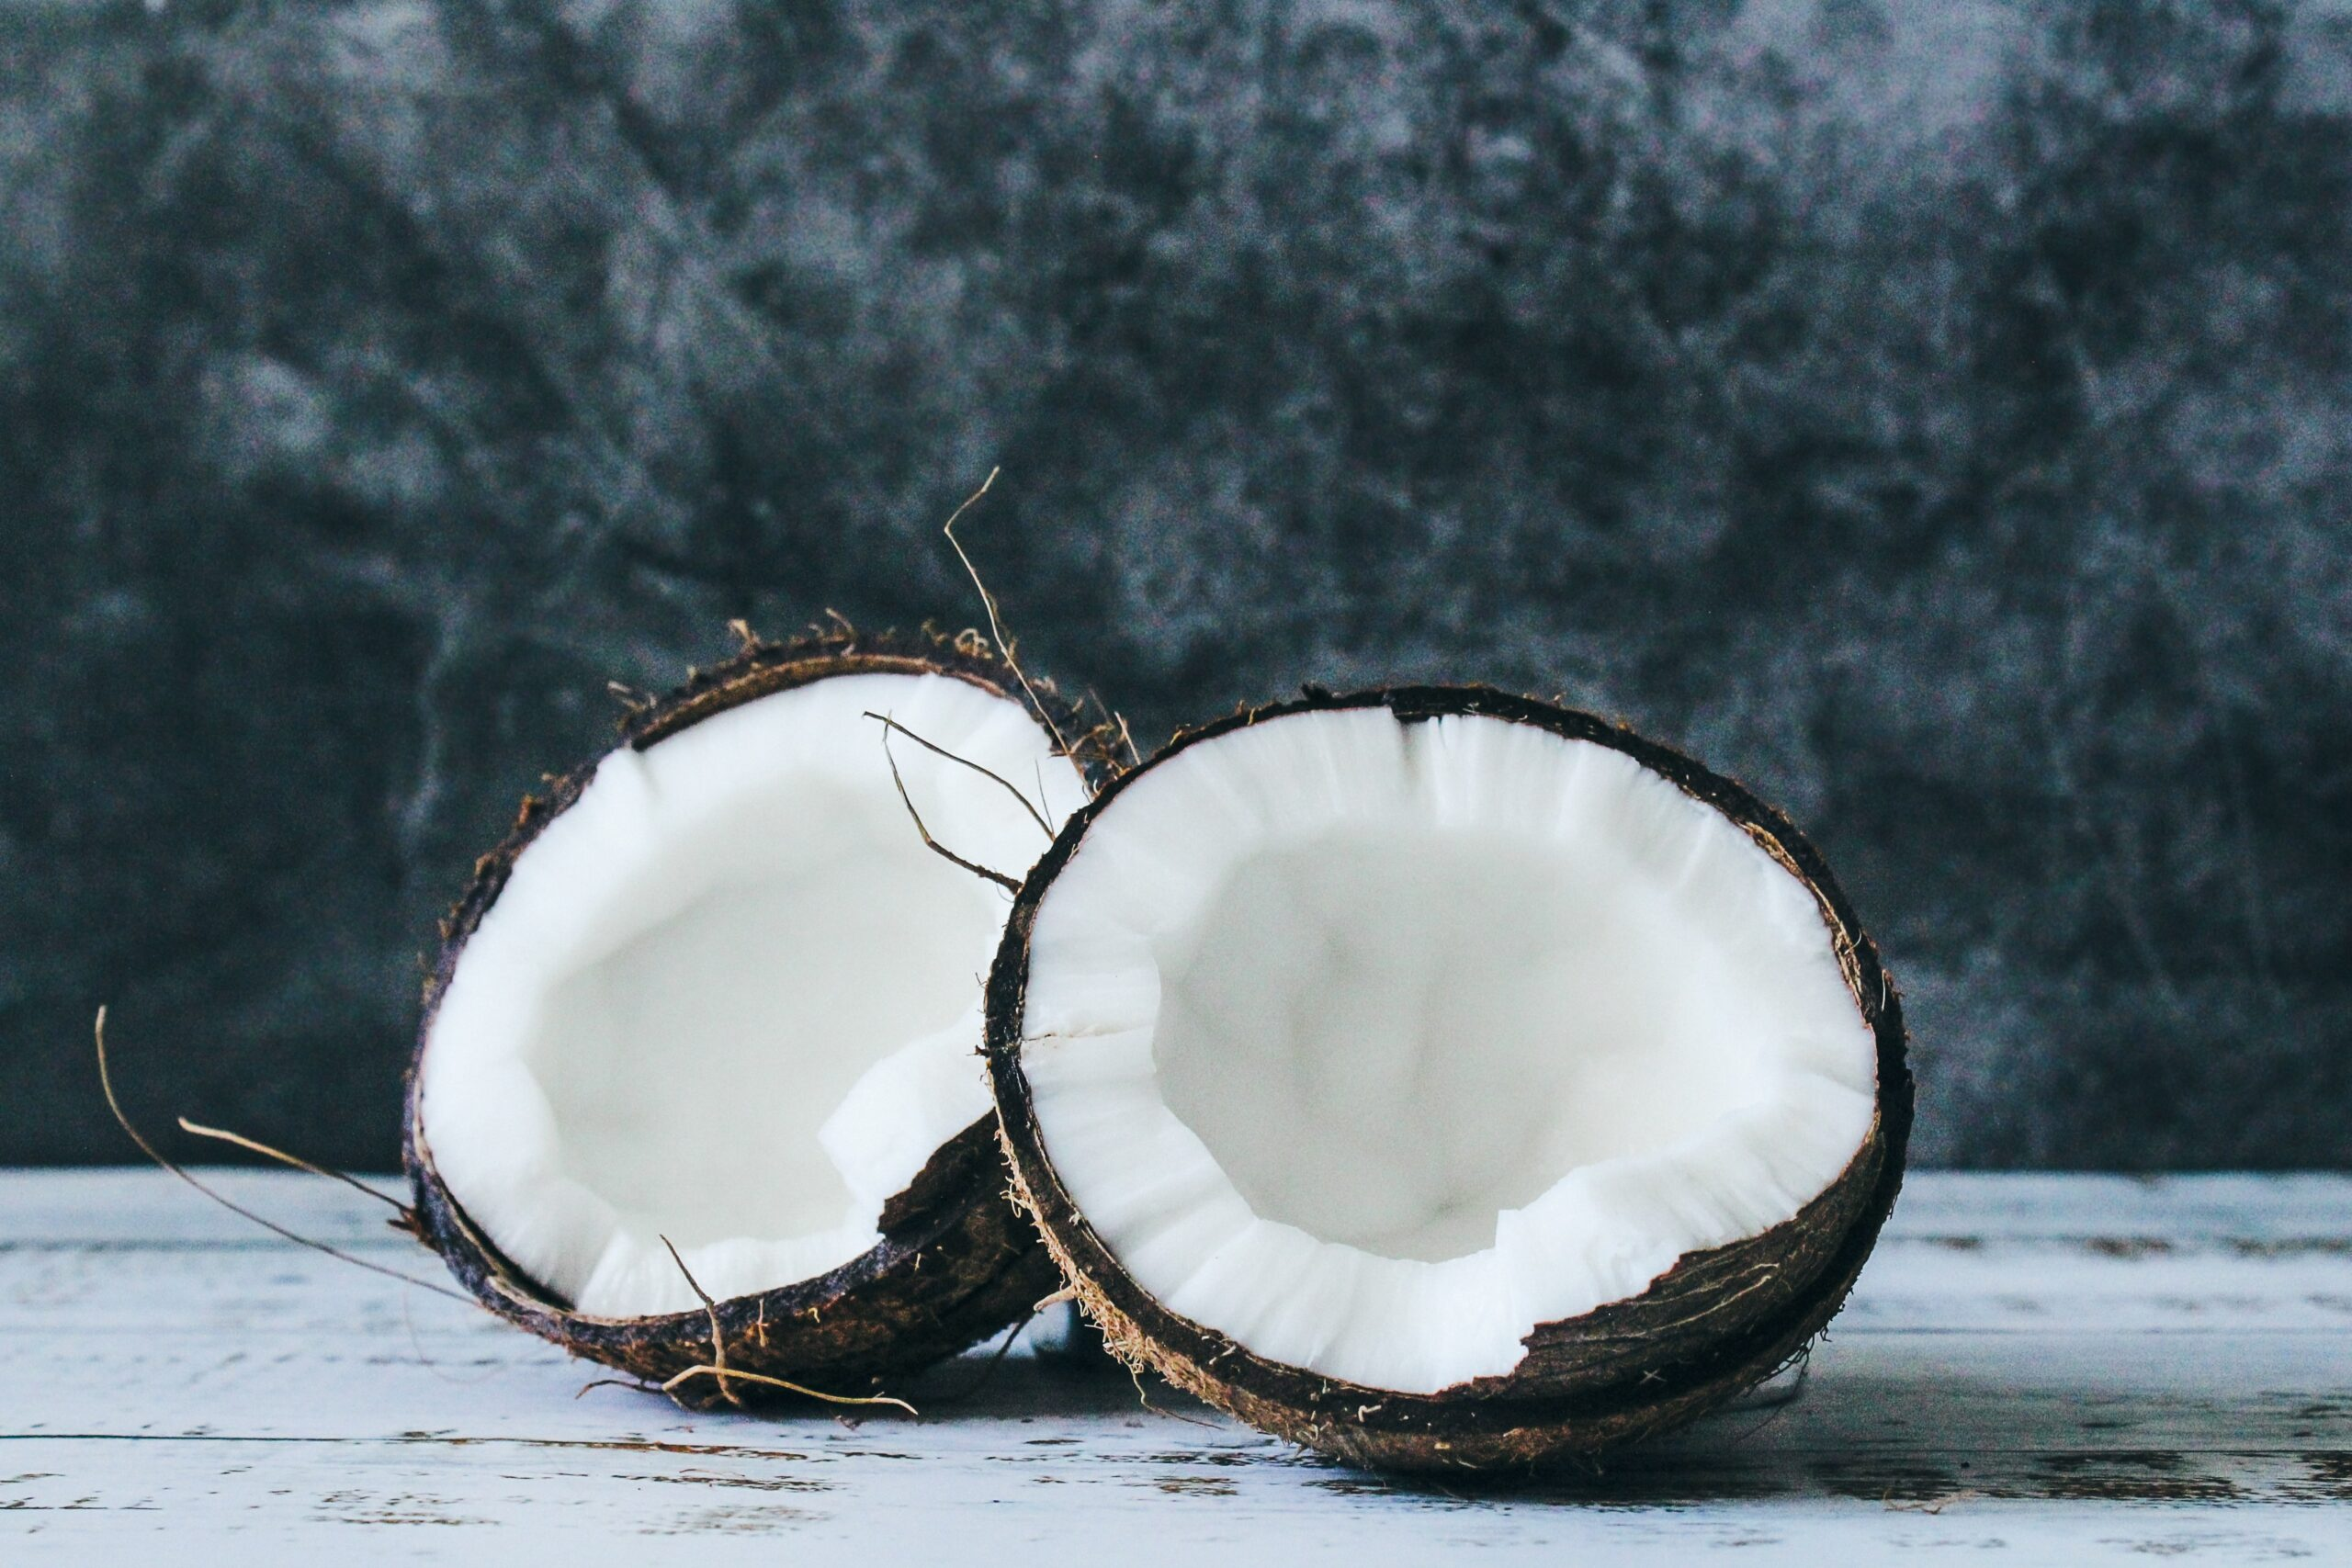 How To Make Your Own Coco Lopez Cream of Coconut - Is your store sold out of Coco Lopez Cream of Coconut? Here's how to make your own! - Coco Loco Coconut Cream - Sweetened Coconut Cream - Cream of Coconut - DIY Coco Lopez - Where to buy Coco Lopez - Coco Lopez Recipes